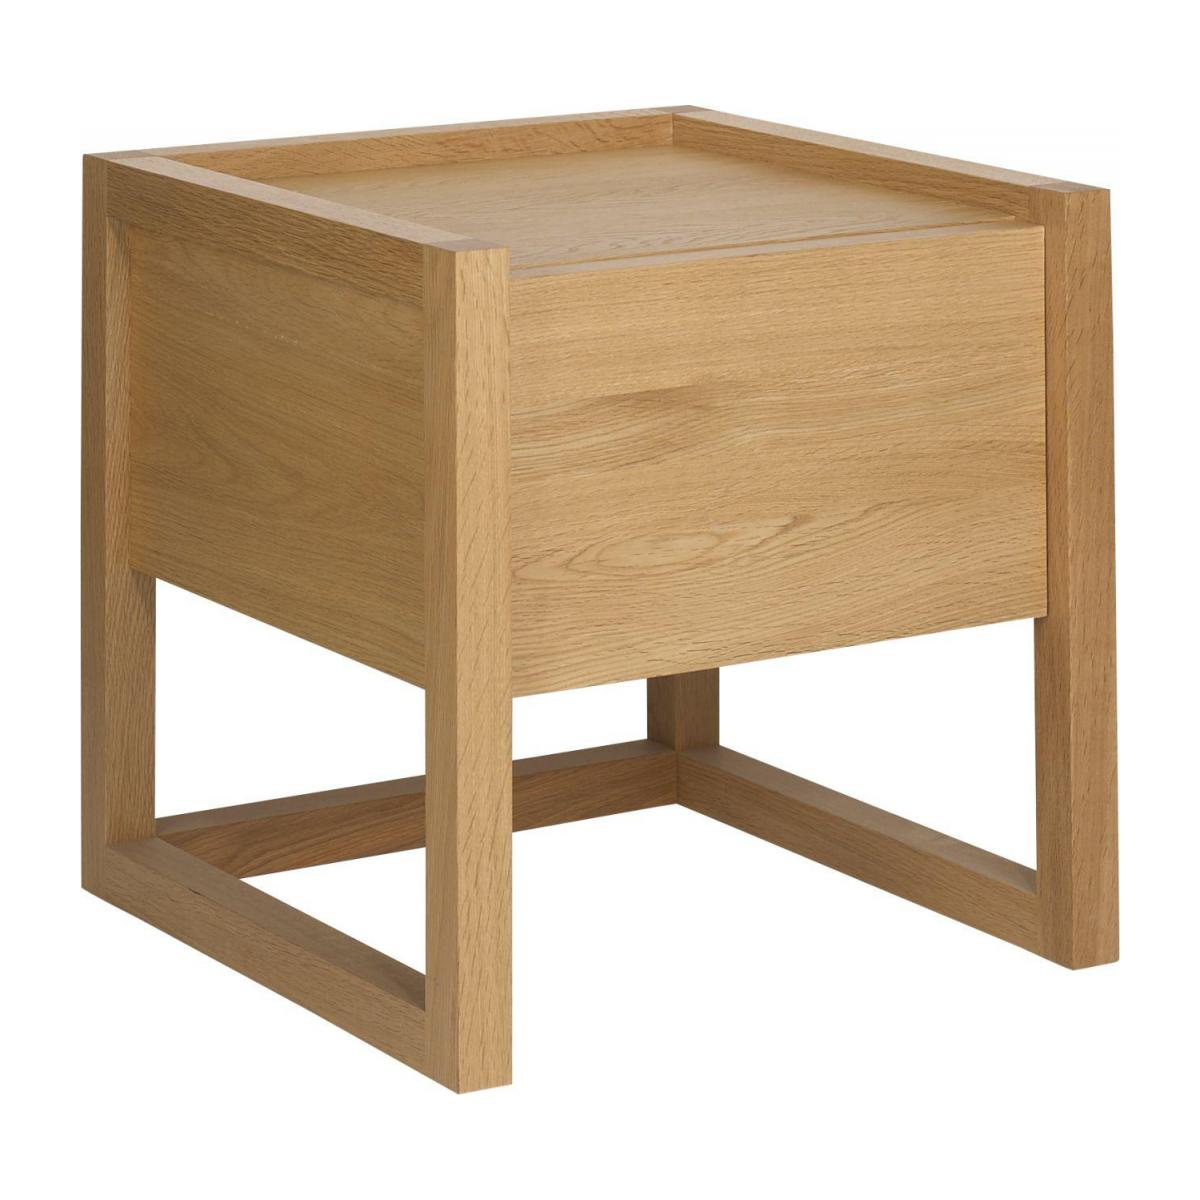 Oak bedside table n°1